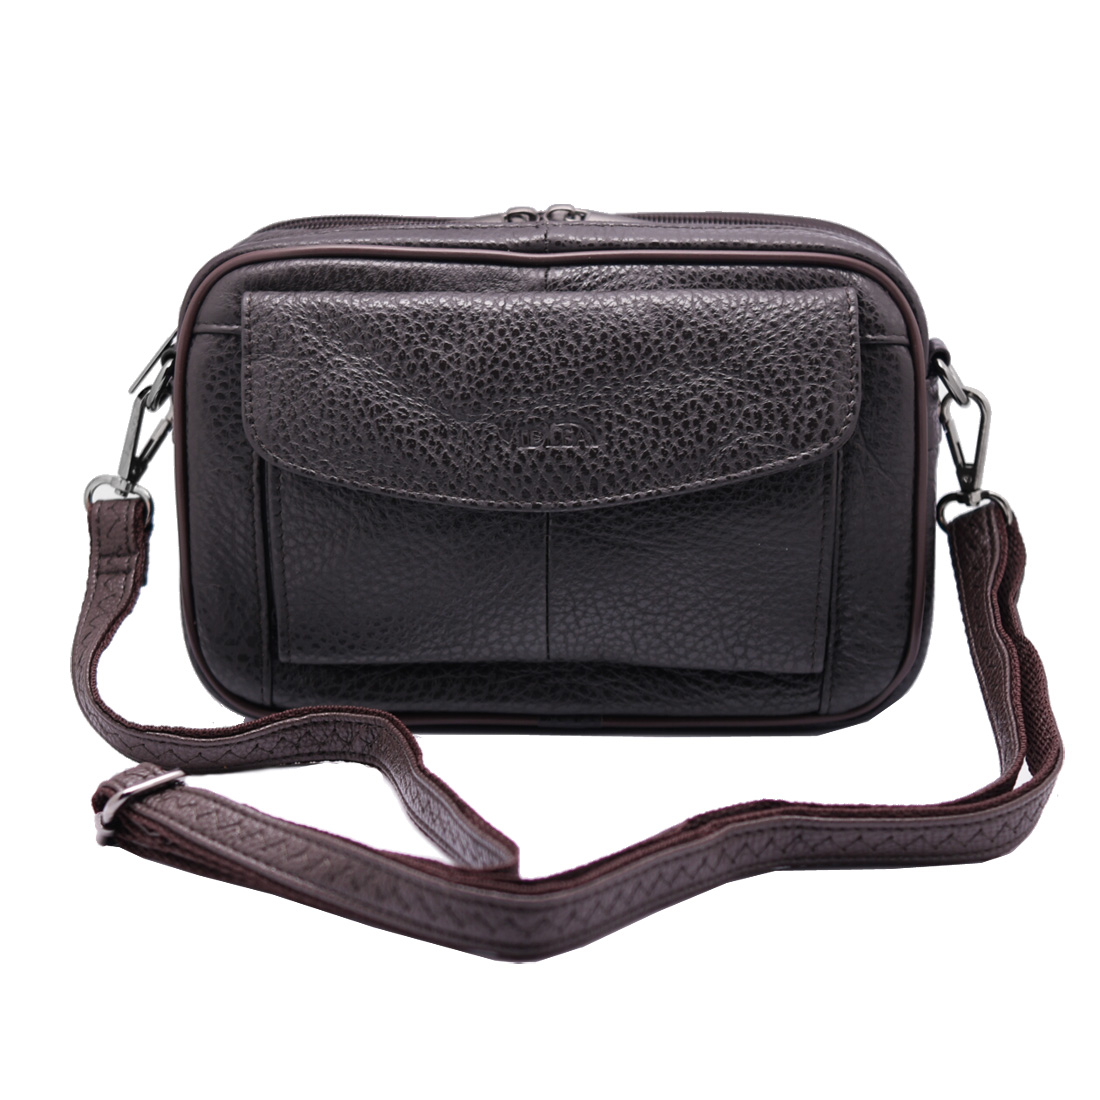 Find great deals on eBay for Men Handbag in Bags, Briefcases and Bags for All. Shop with confidence.